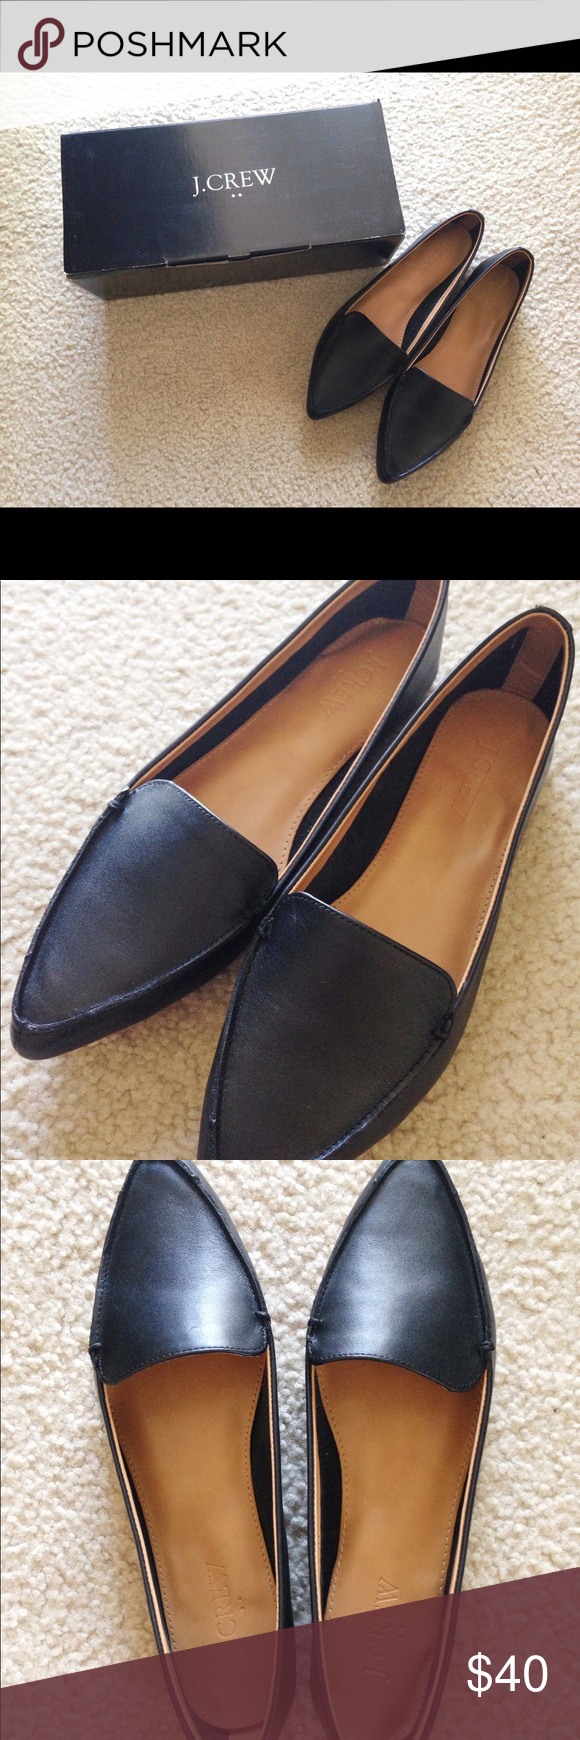 904f309f156 J.Crew Edie Leather Loafers Size 8 These are such classy loafers! I ...